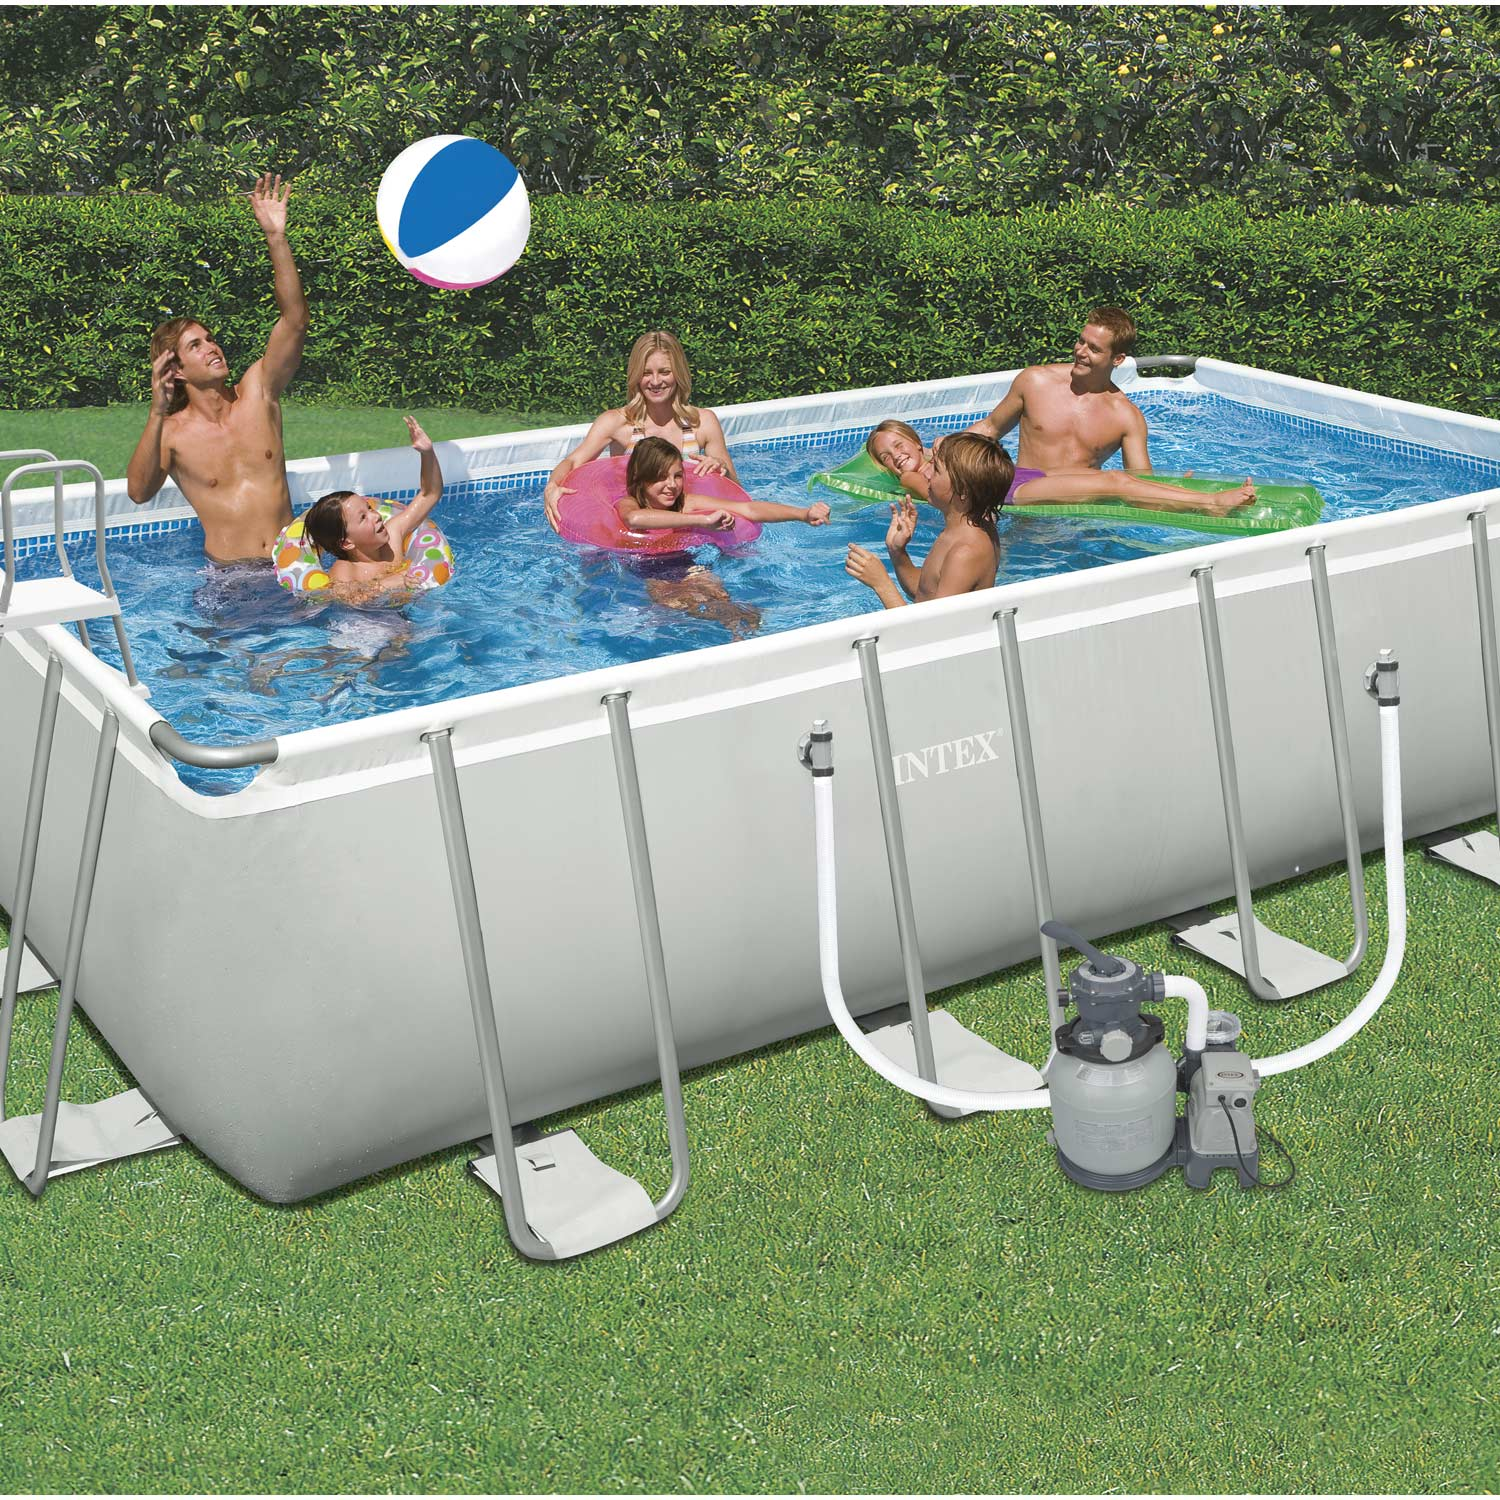 Piscine hors sol autoportante tubulaire intex l x l for Piscine hors sol bois 4x2